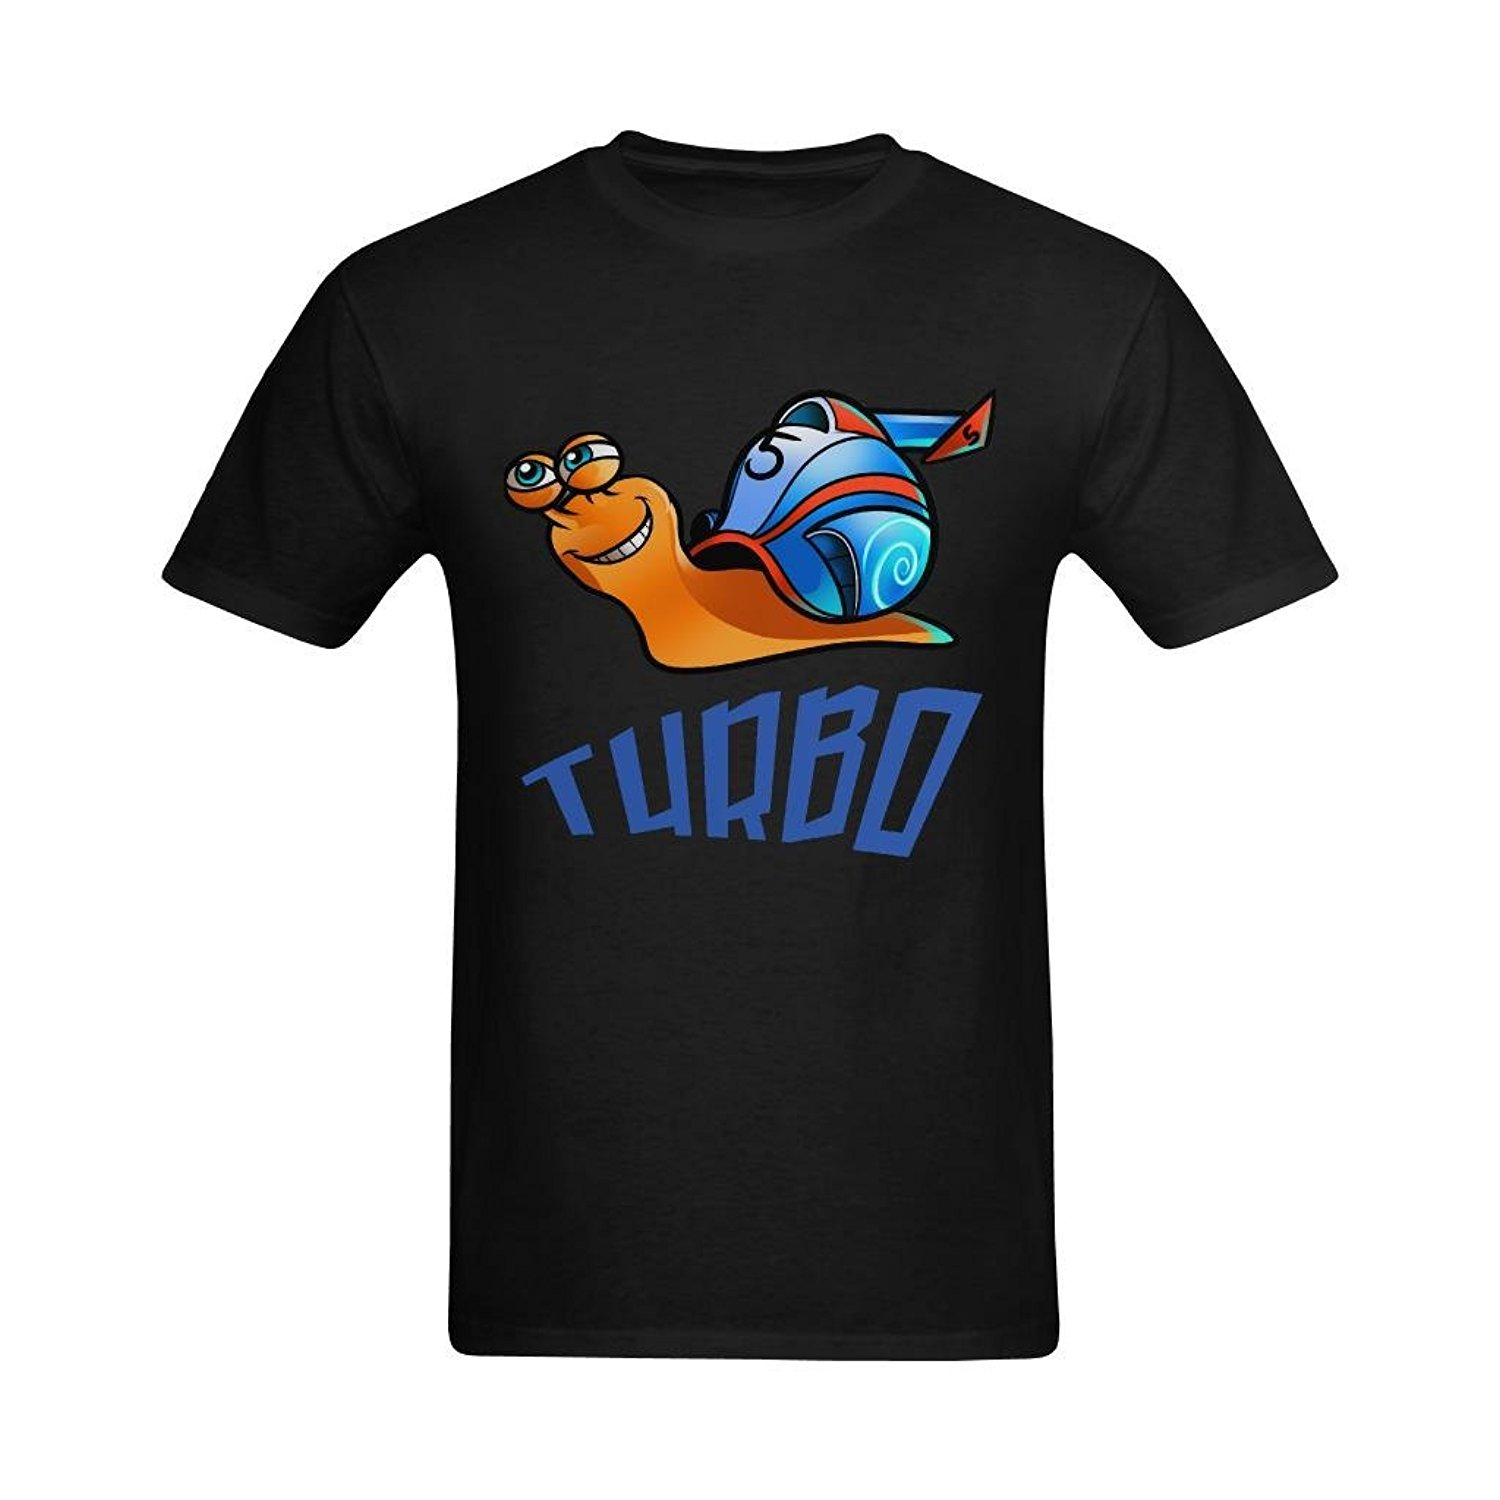 Youranli MenS Turbo Animation Garden Snail Supercharger T Shirts Short Sleeves Cotton T Shirt Free Shipping Top Tee Plus Size